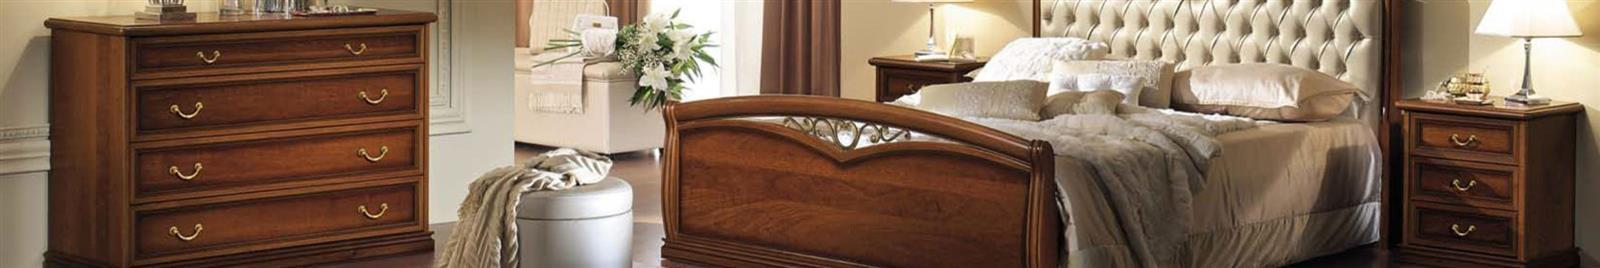 Notalgia Night Range - Italian Bedroom Furniture